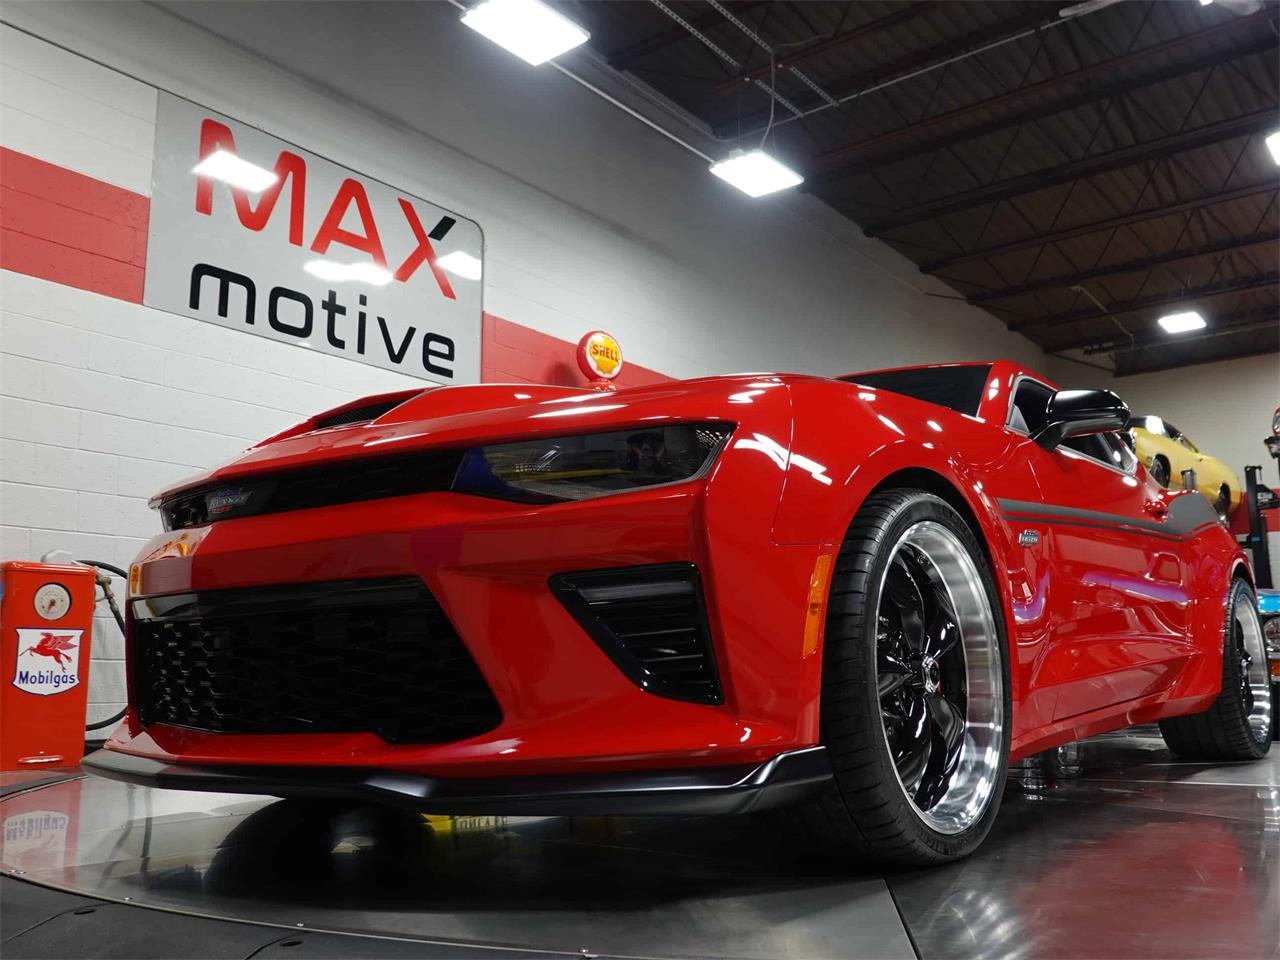 2018 Chevrolet Camaro (CC-1353079) for sale in Pittsburgh, Pennsylvania